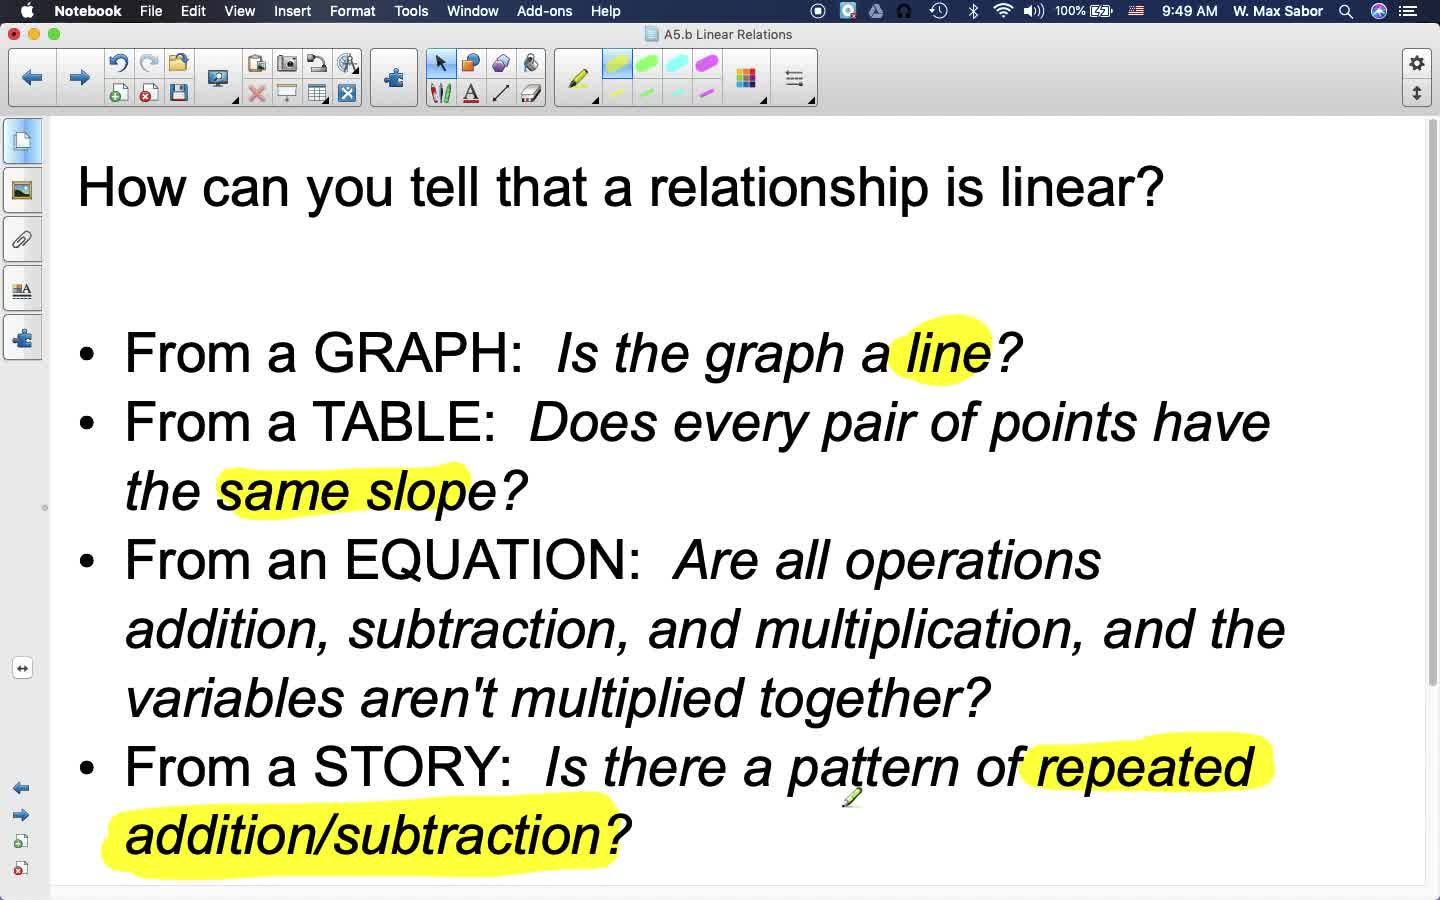 A5.b Linear Relations